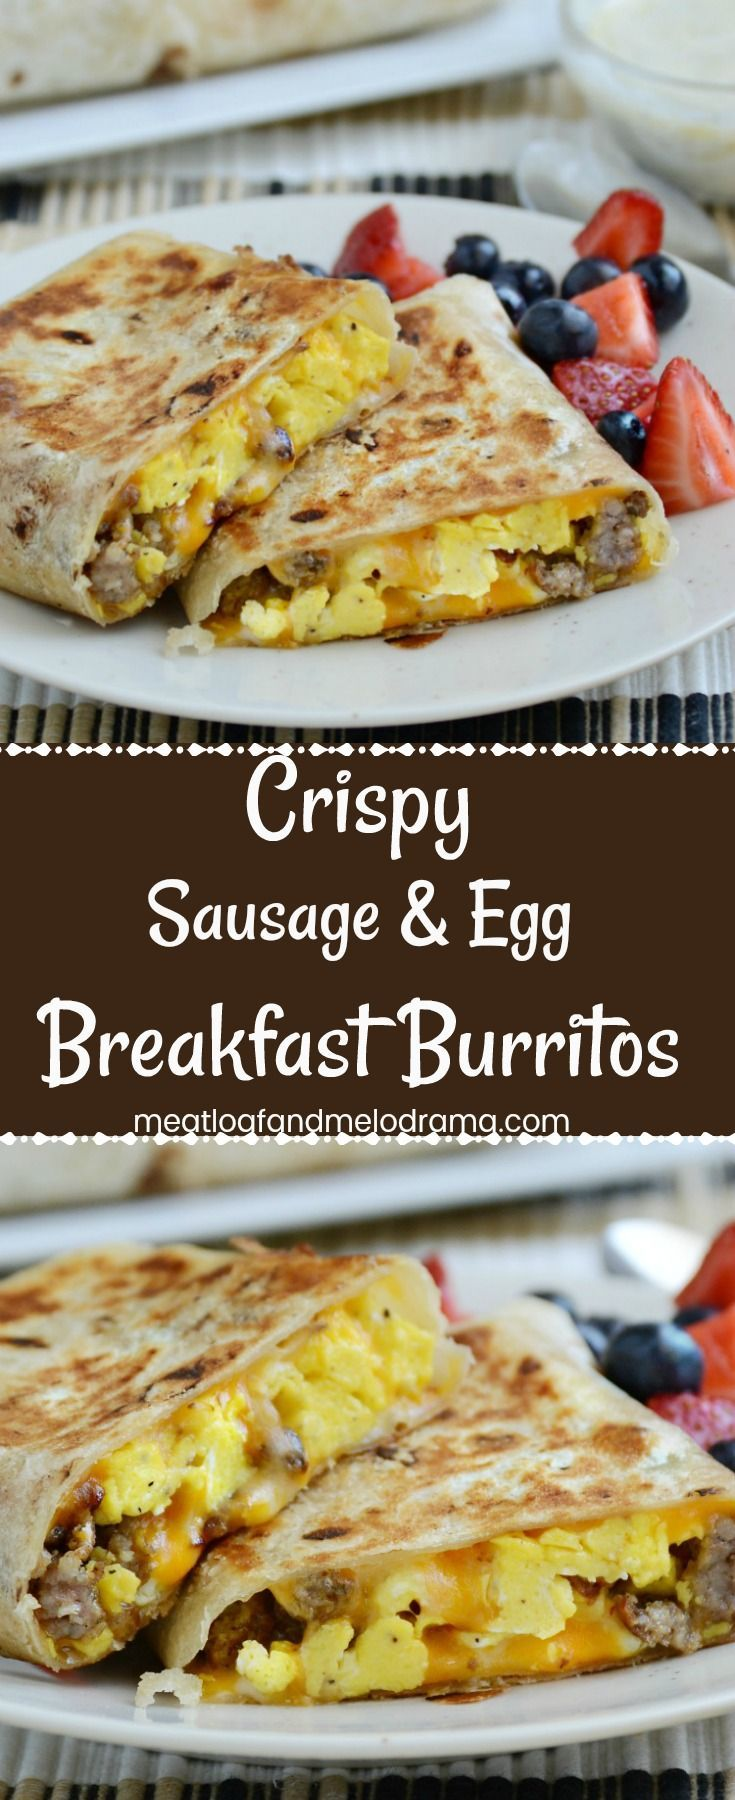 Crispy Sausage and Egg Breakfast Burritos - An easy grab and go breakfast burrito with eggs, sausage and colby jack cheese rolled into a tortilla and browned in a skillet until crisp. Freezer friendly and easy to heat up for a quick breakfast, lunch or di